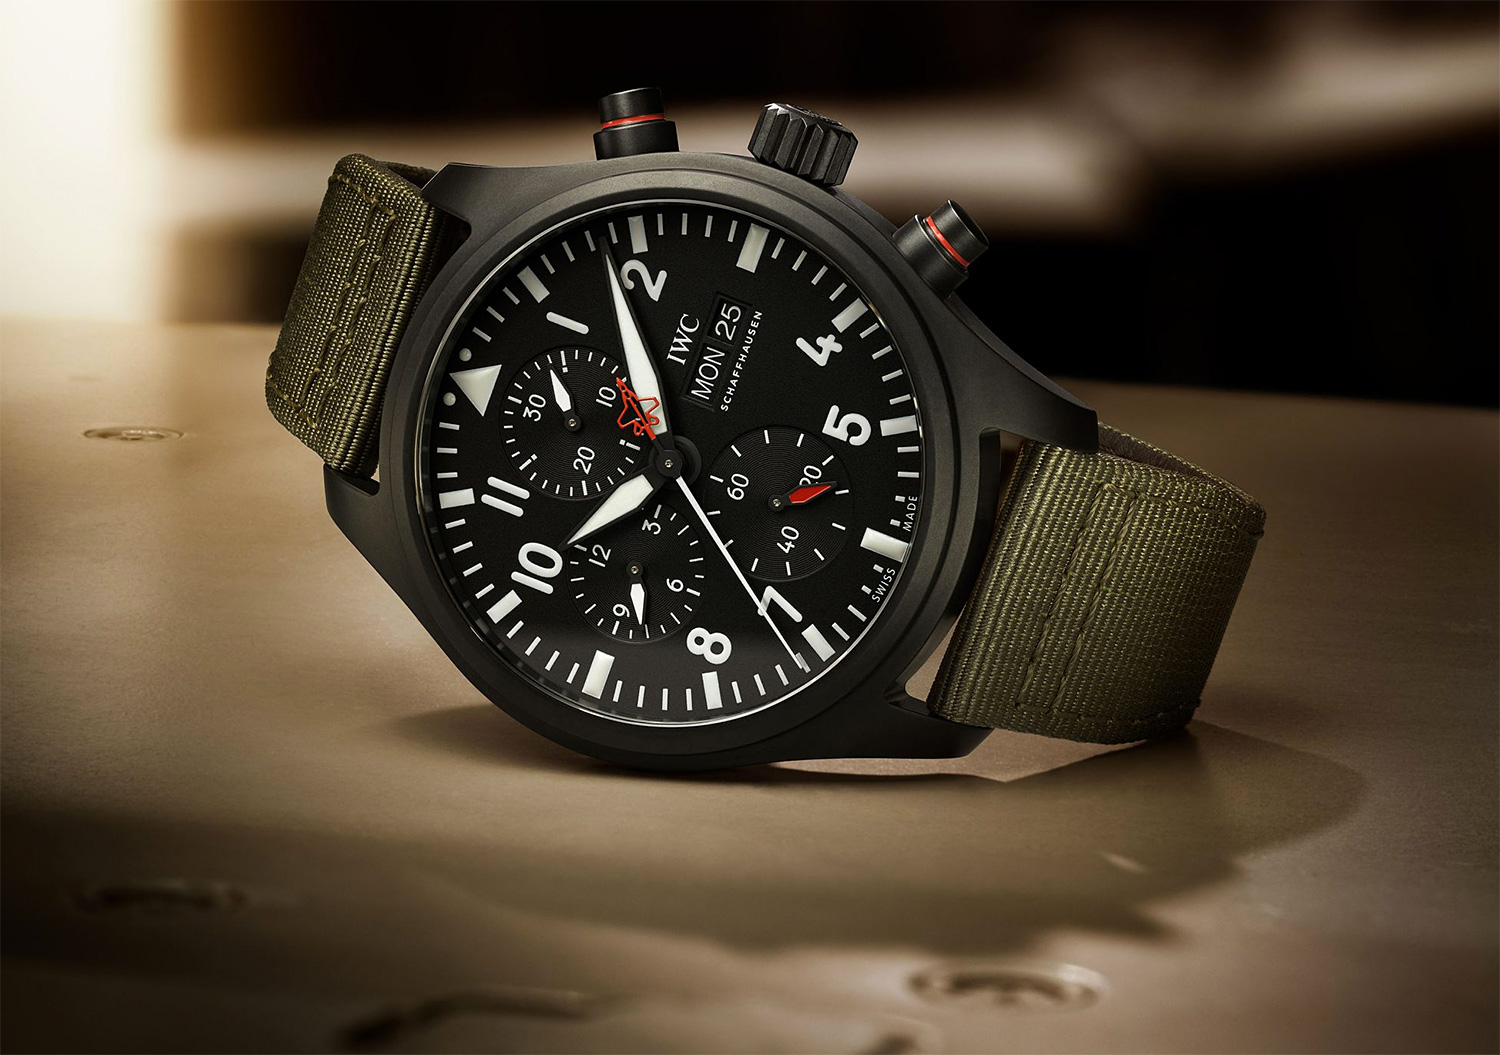 IWC Takes Flight with Top Gun Chronograph at werd.com